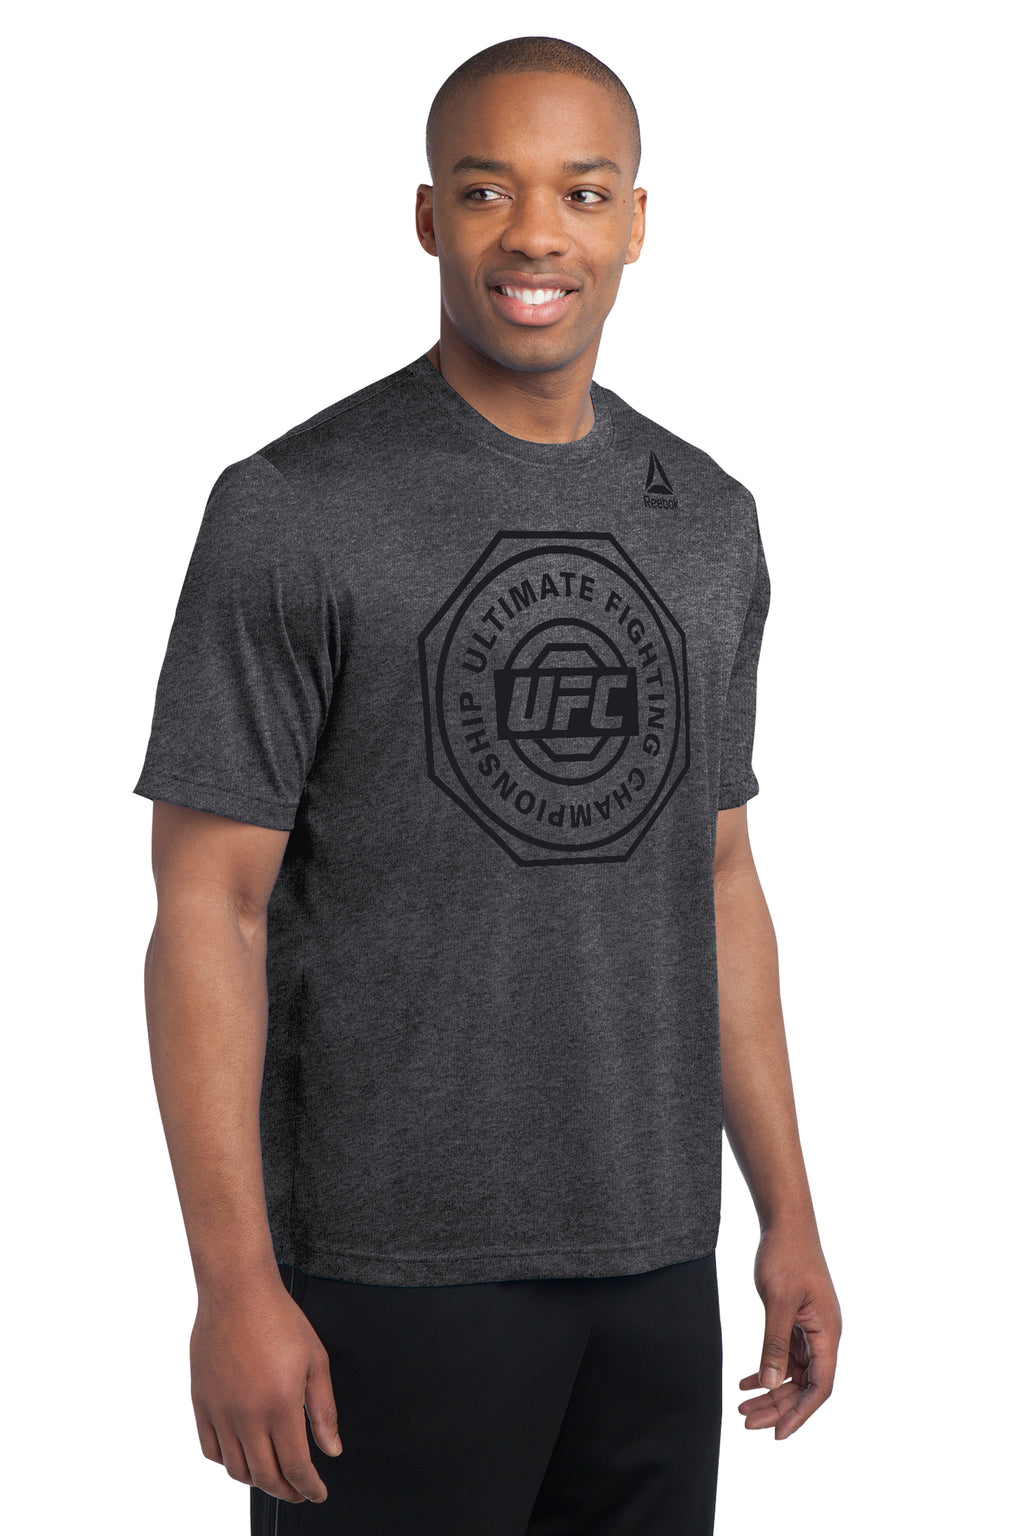 UFC Mens Reebok Ulitimate Crew Performance Tee -Black/Heathered